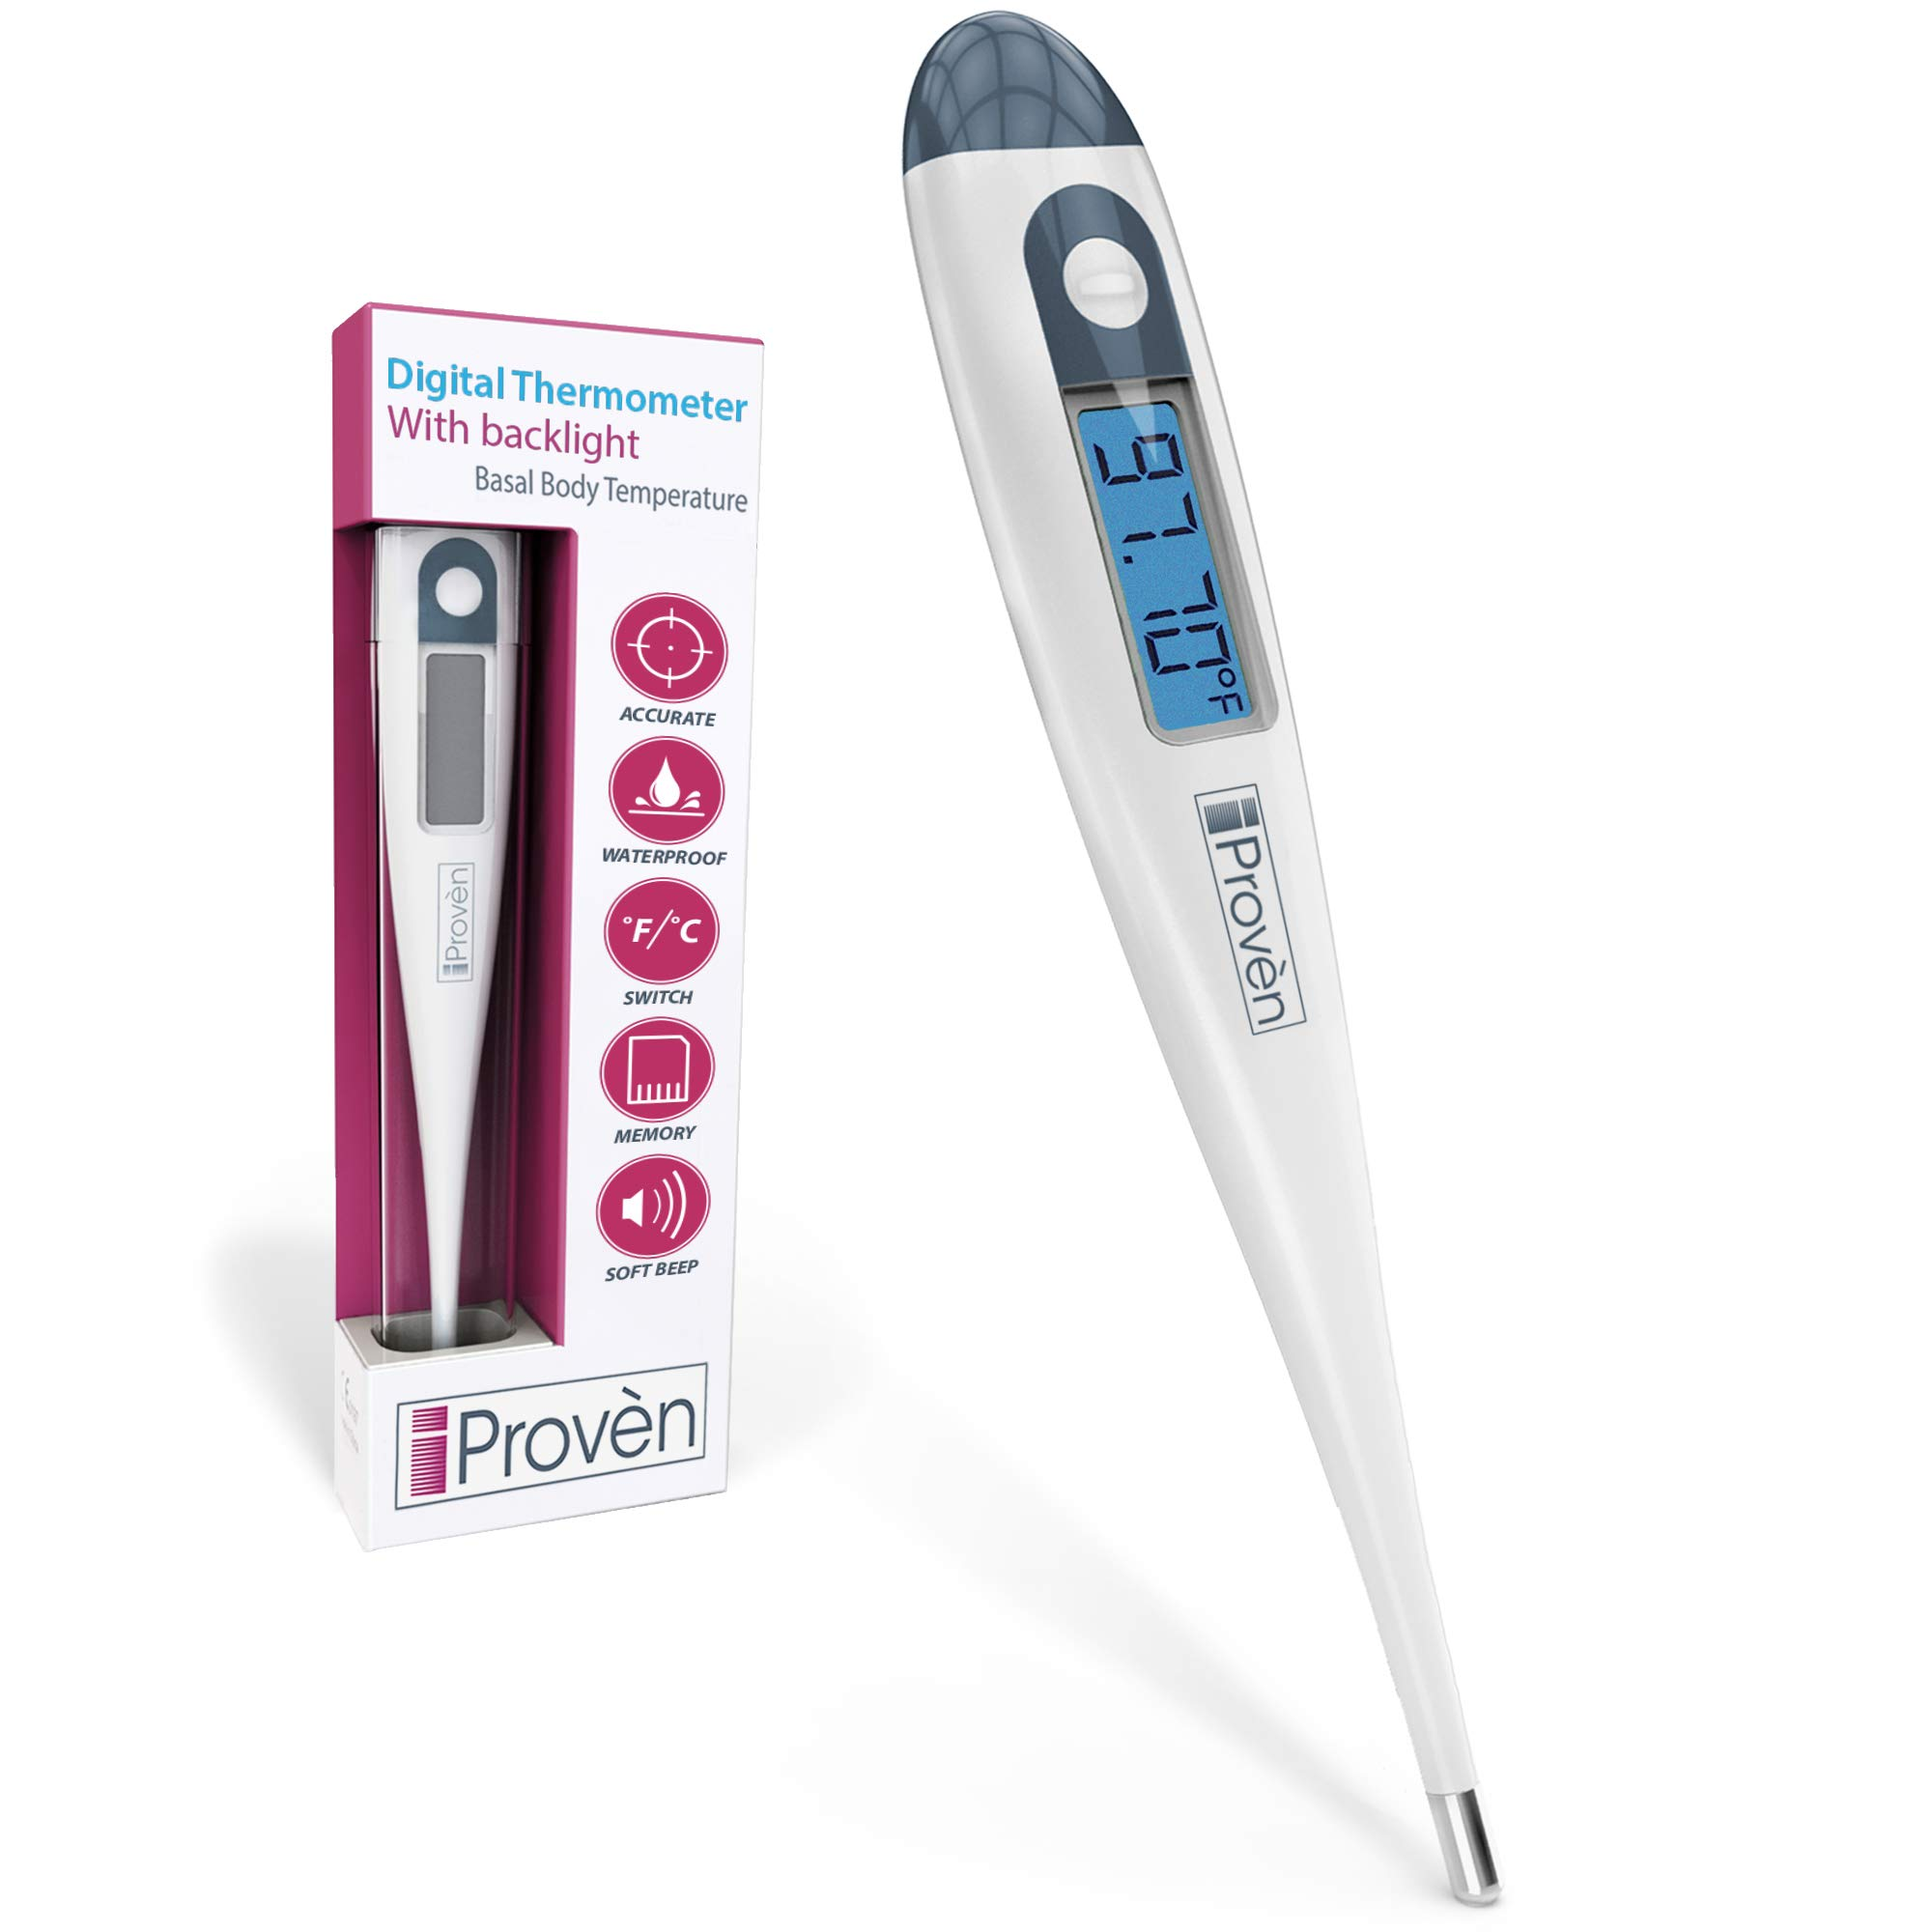 Basal Body Thermometer - Ovulation Predictor - BBT for Fertility Tracking - with Backlight - Accurate 1/100th Degree - Highly Sensitive - for Natural Family Planning - BBT-113i by iProven